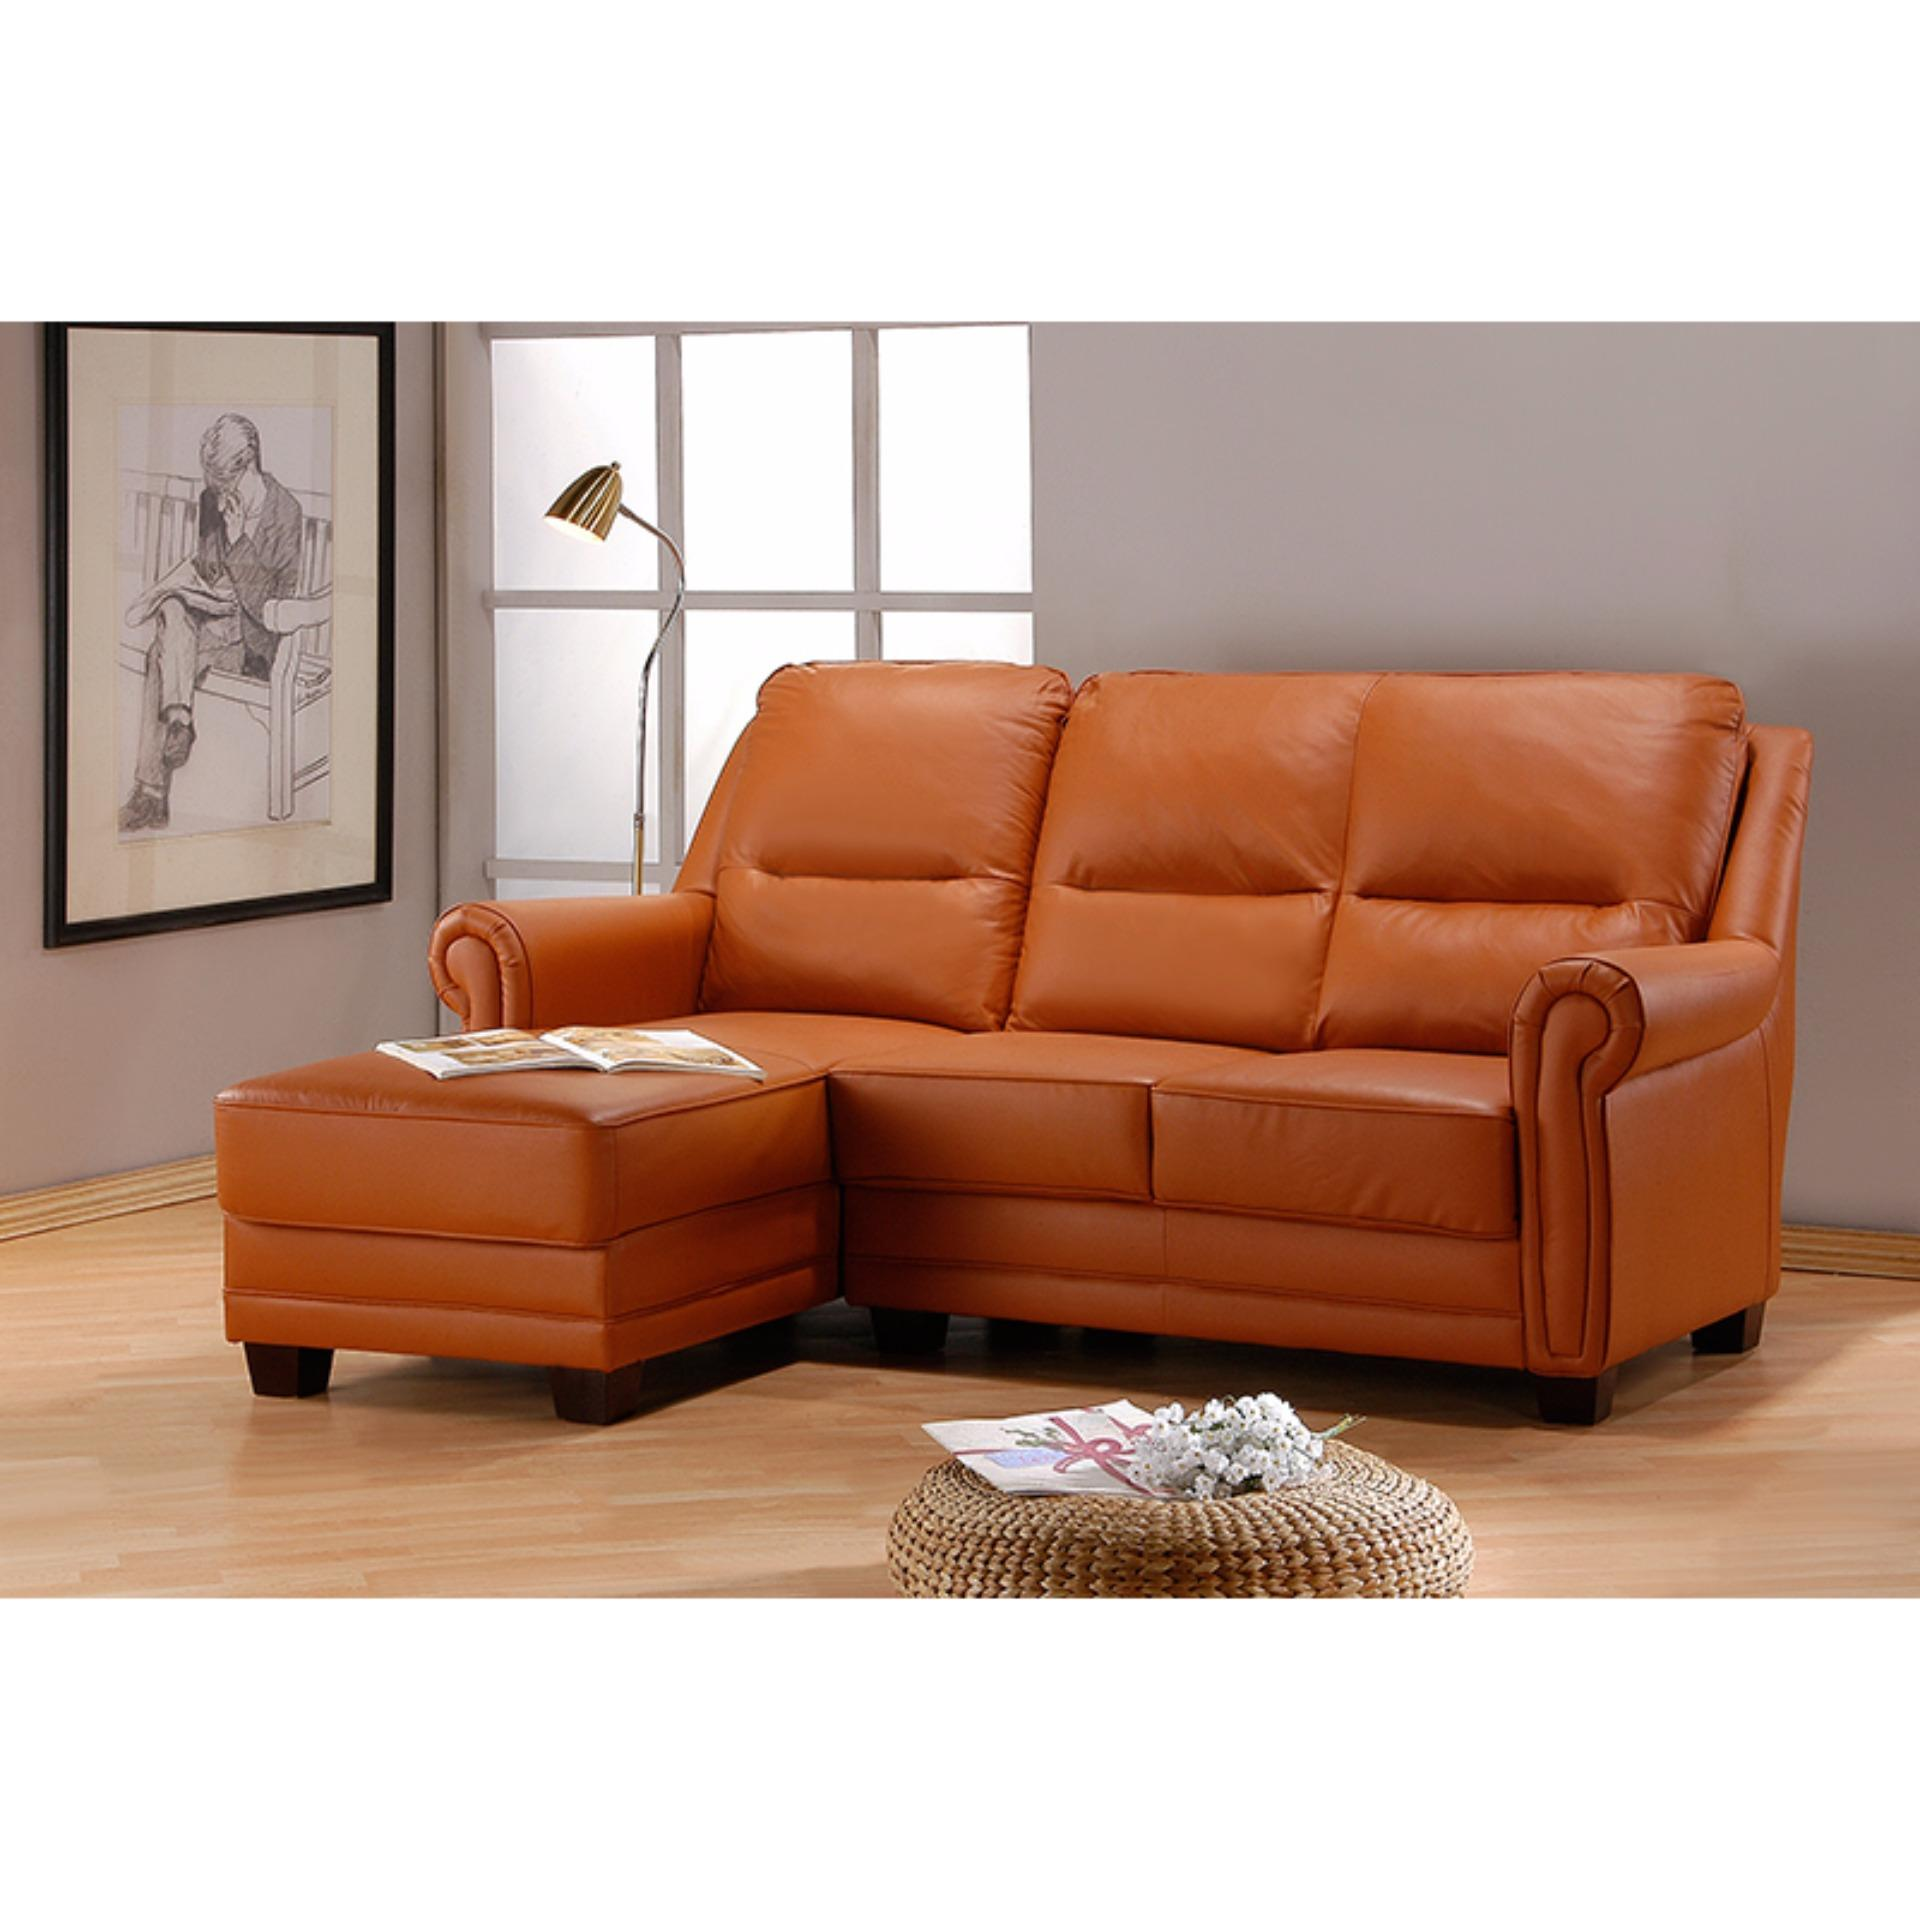 Dora L Shape Sofa Living Room Sofa Camel Color Singapore